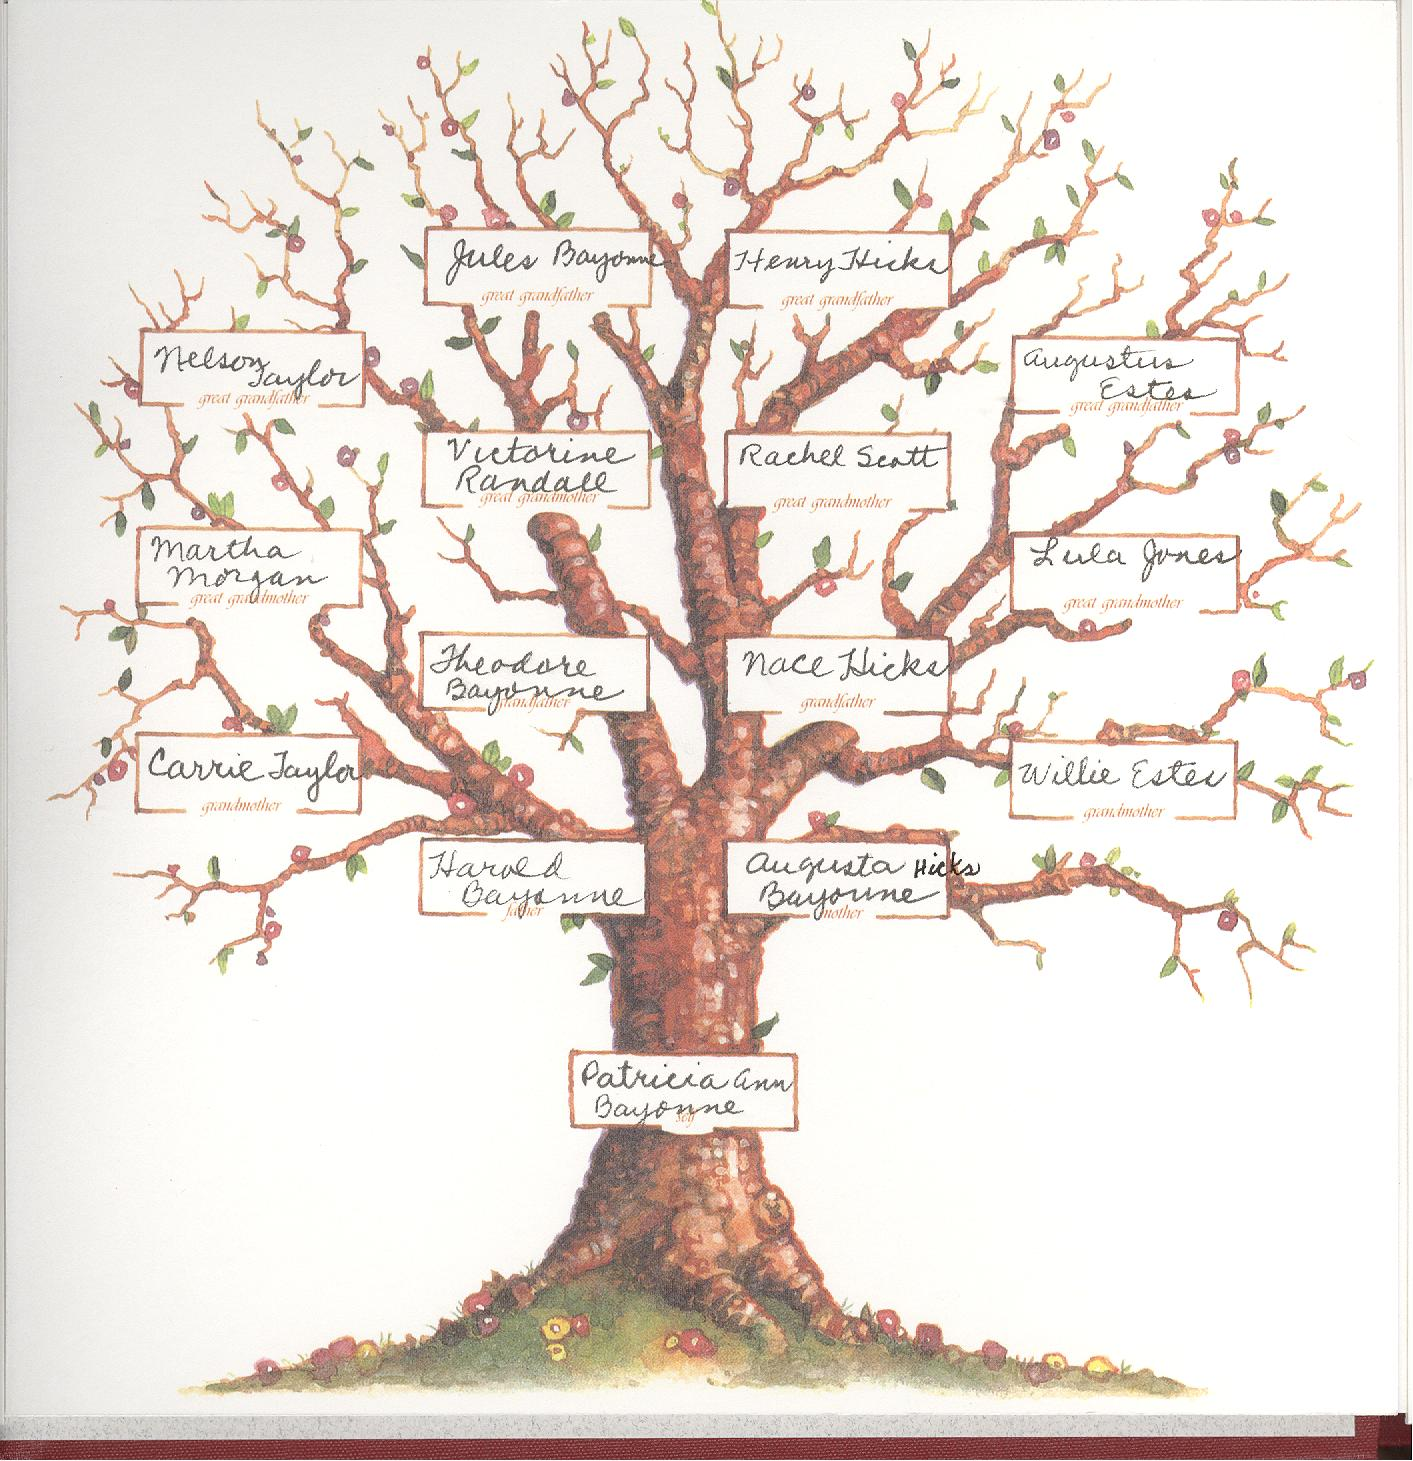 AFRICAN ROOTS: PAT'S FAMILY TREE